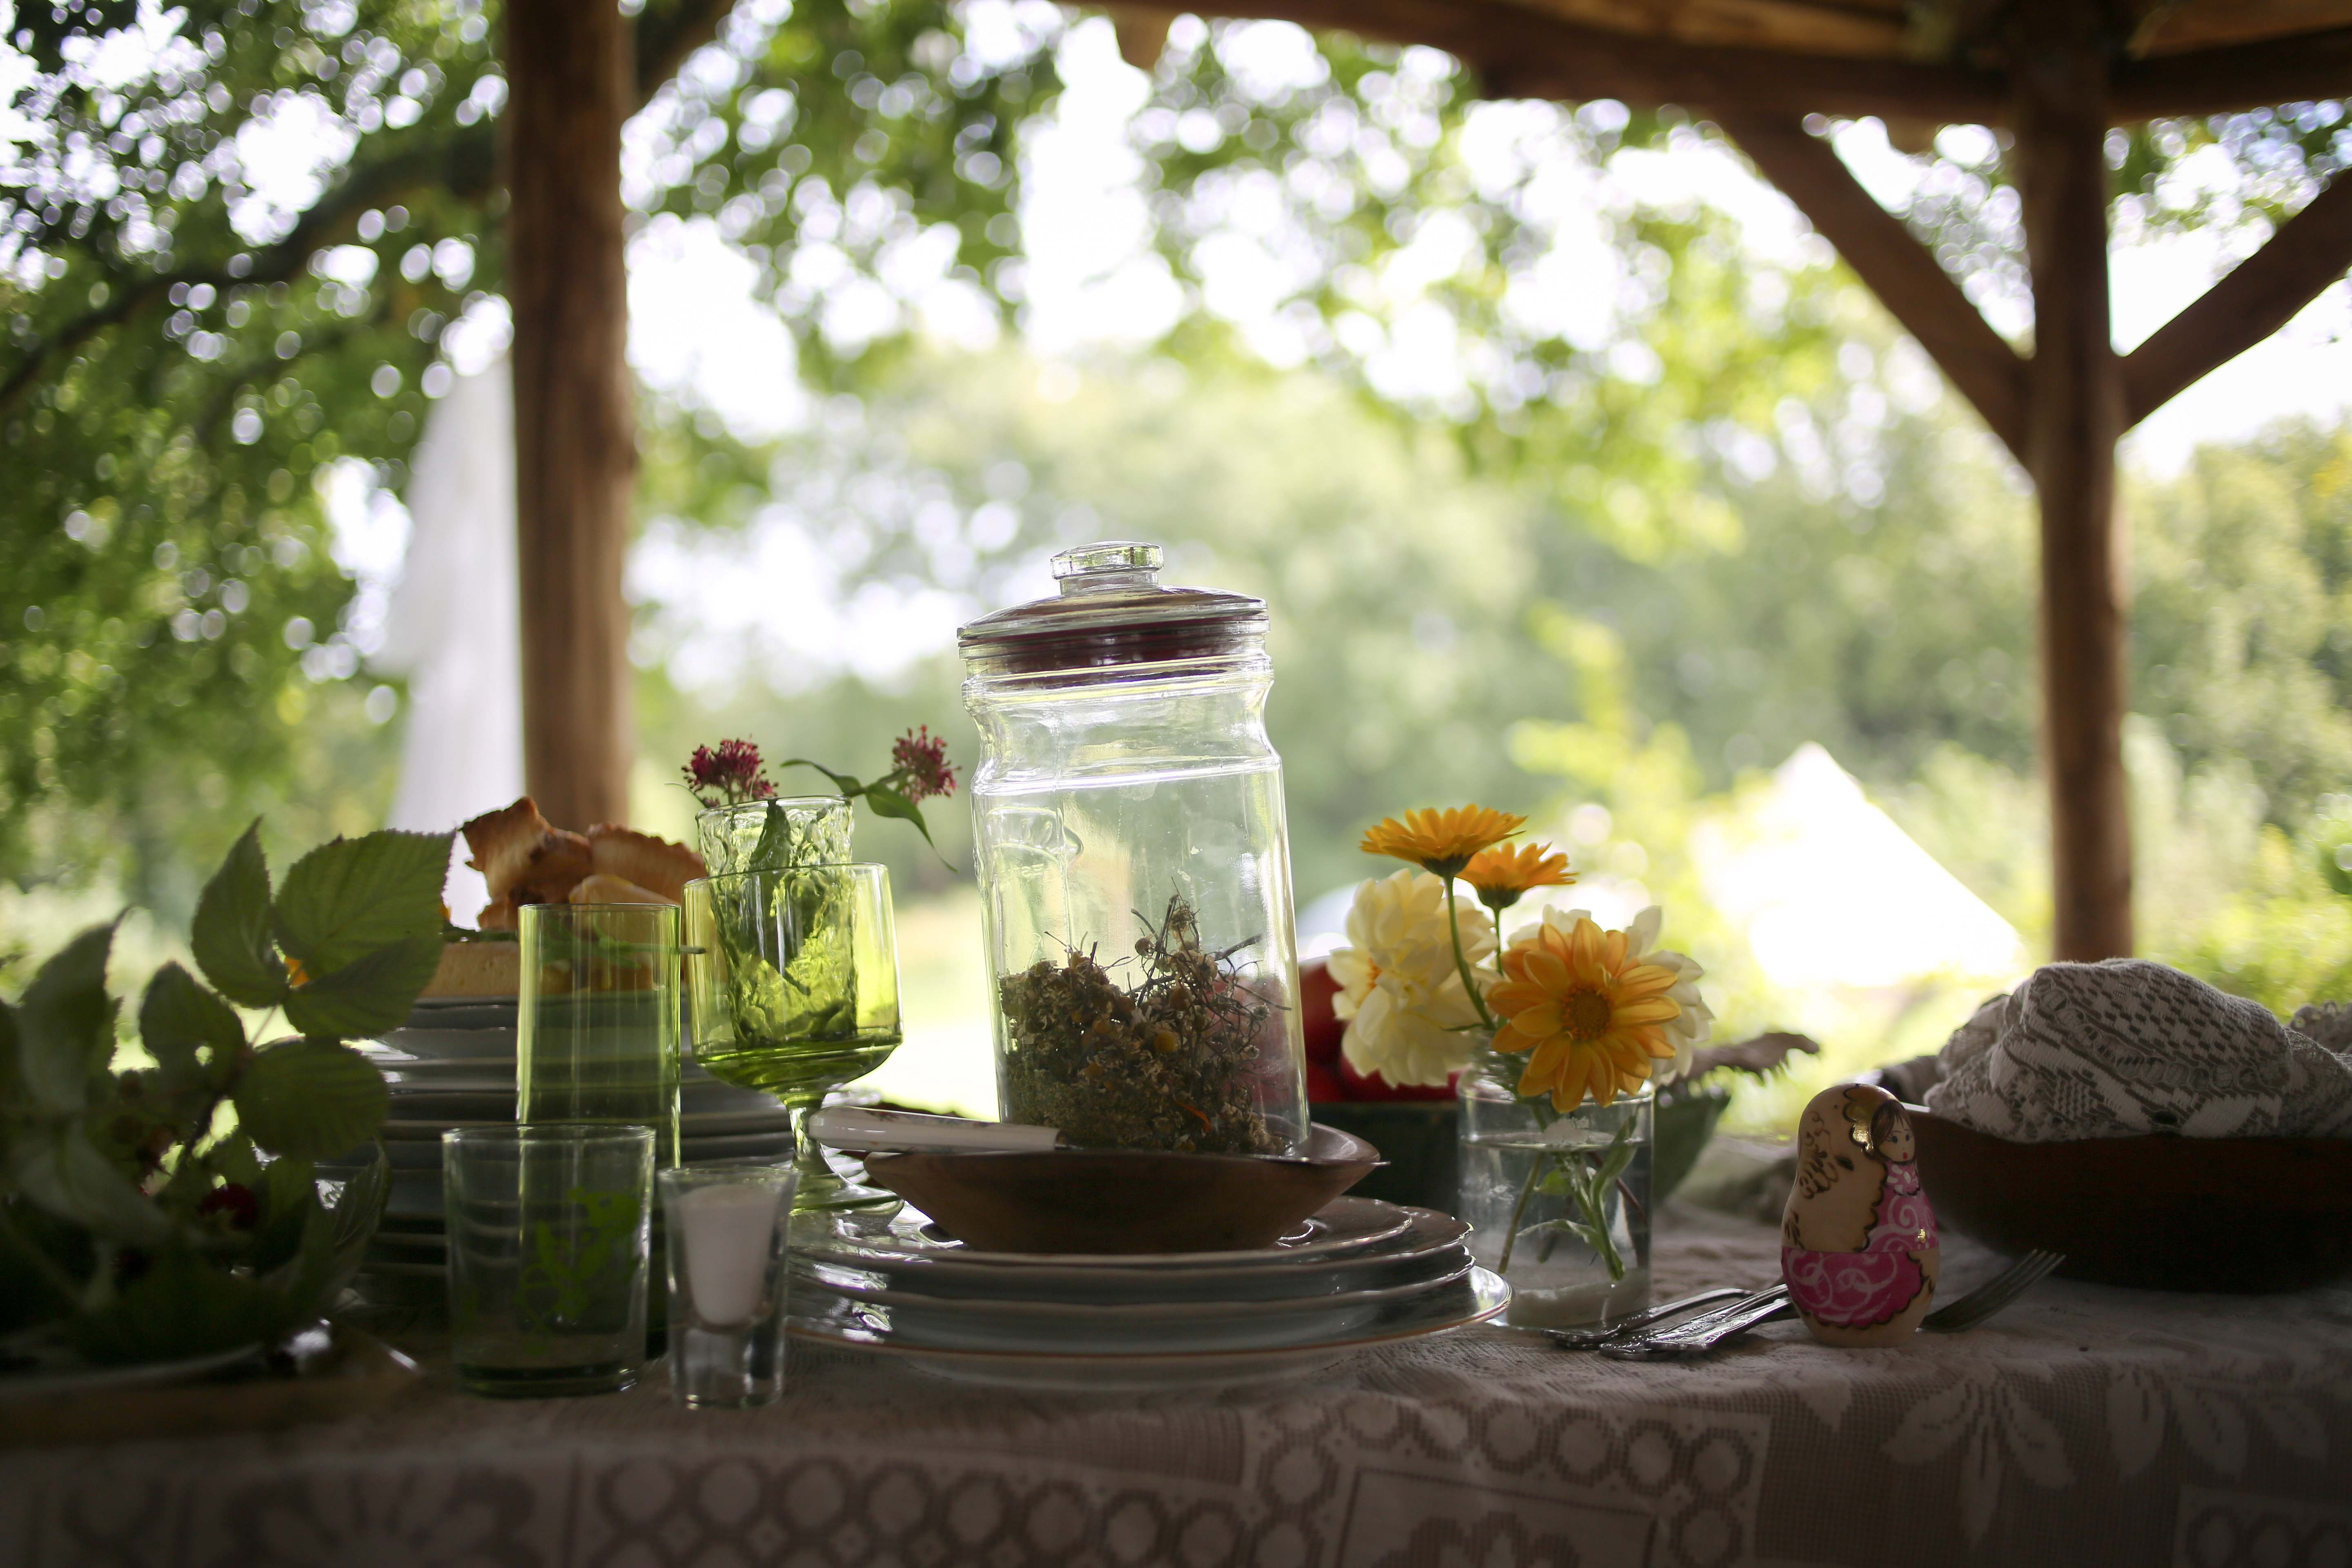 Welsummer camping - eco friendly camping and glamping in ...